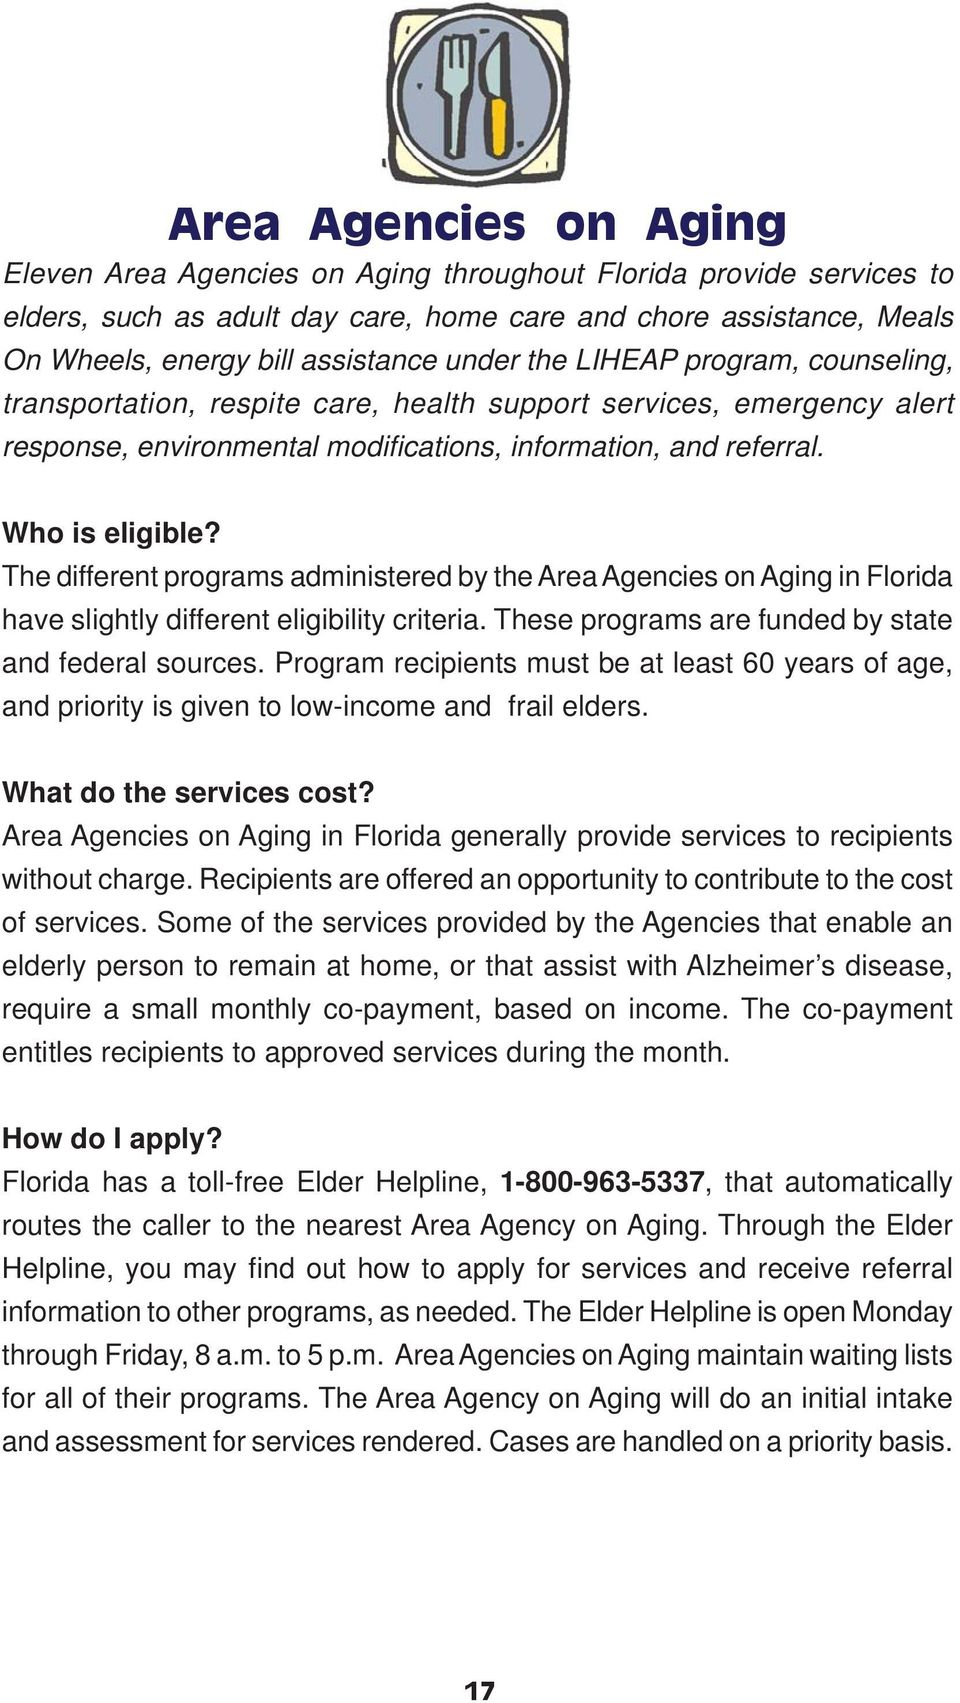 The different programs administered by the Area Agencies on Aging in Florida have slightly different eligibility criteria. These programs are funded by state and federal sources.